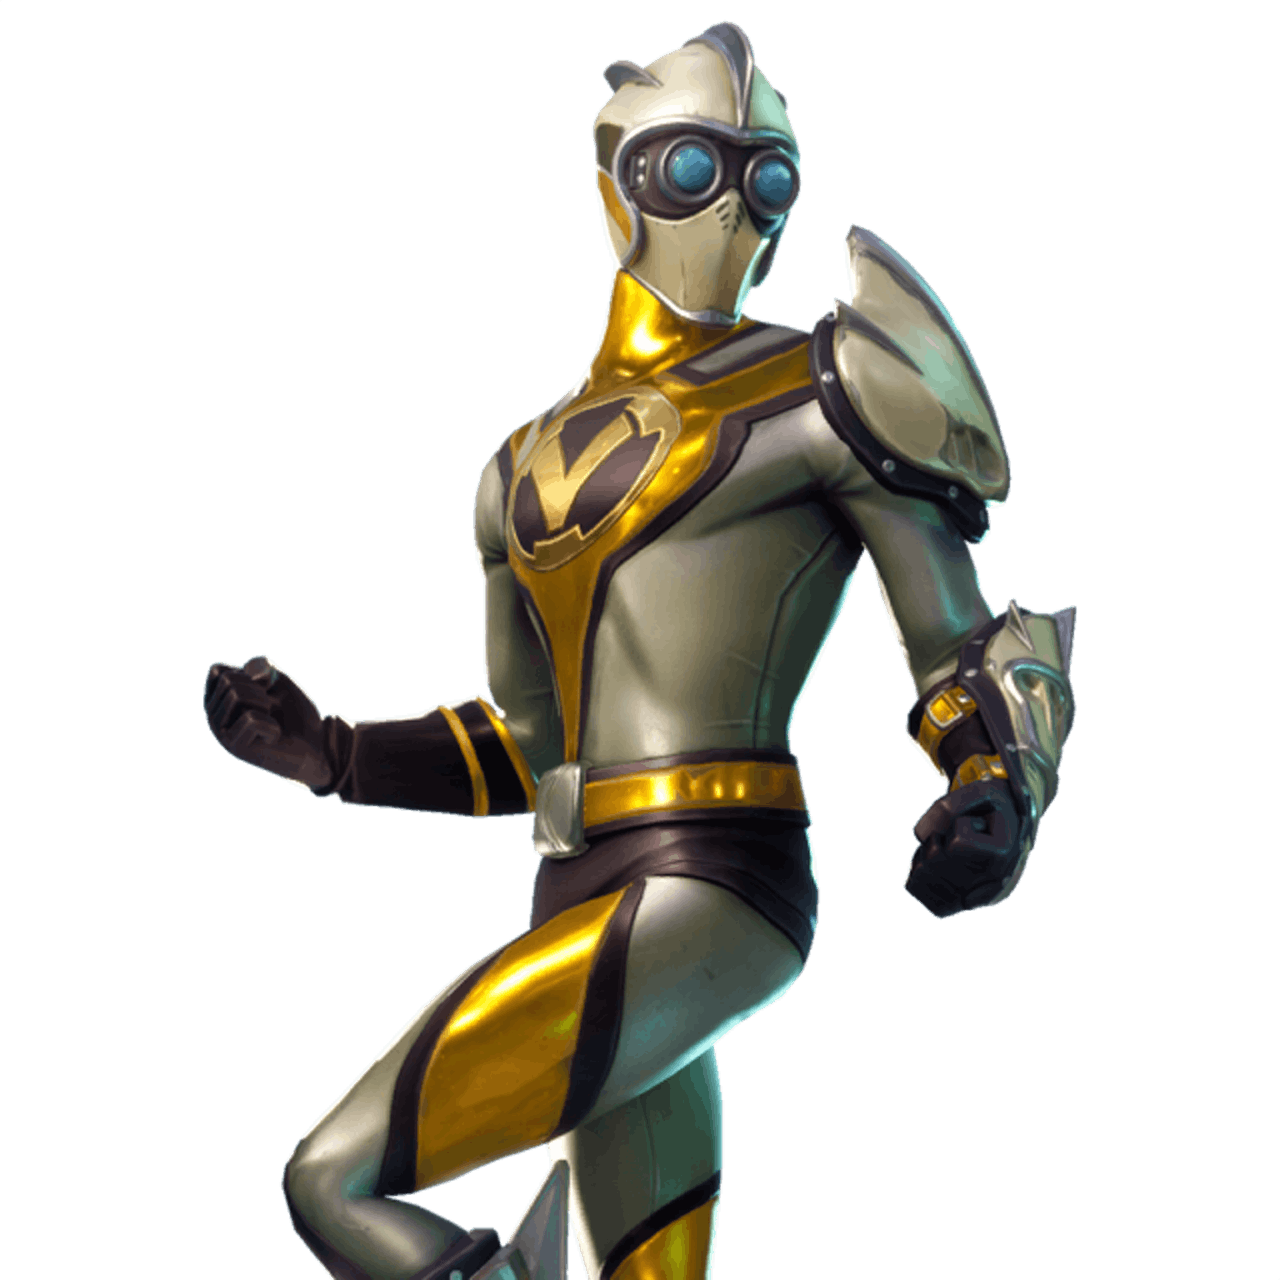 Venturion 'Fortnite' skin